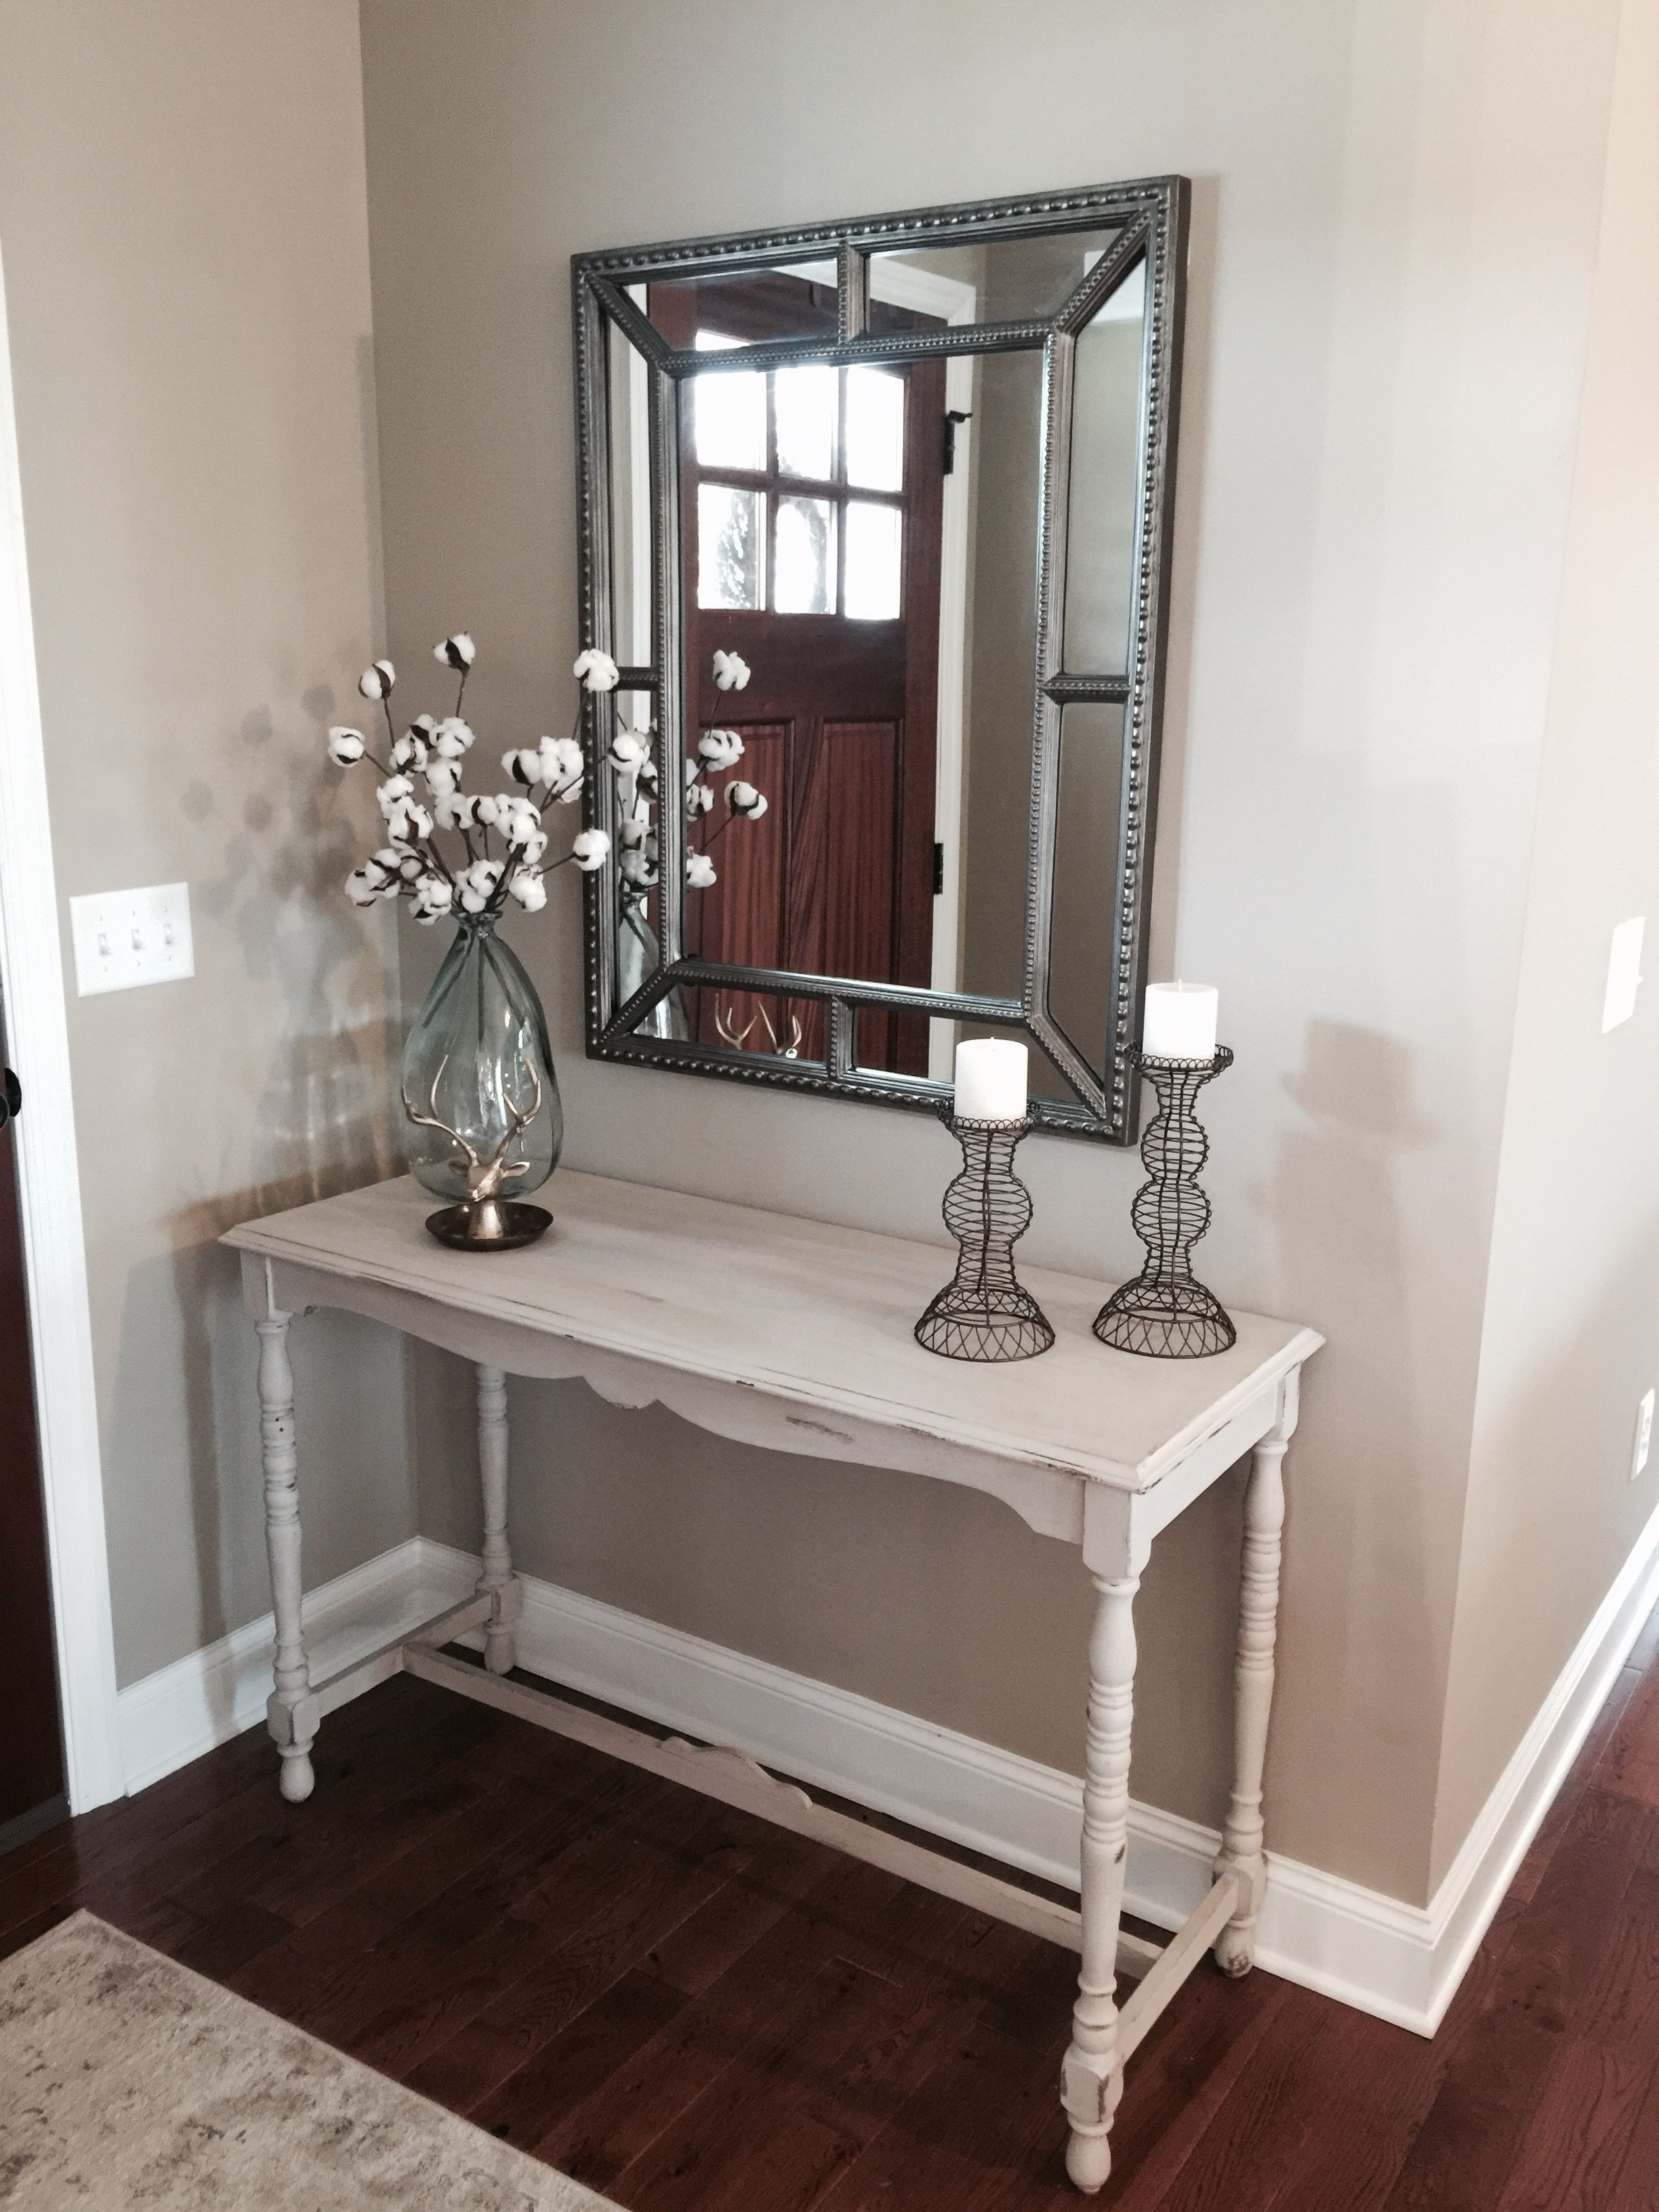 Small entry way restored console table decor from world Small entryway table